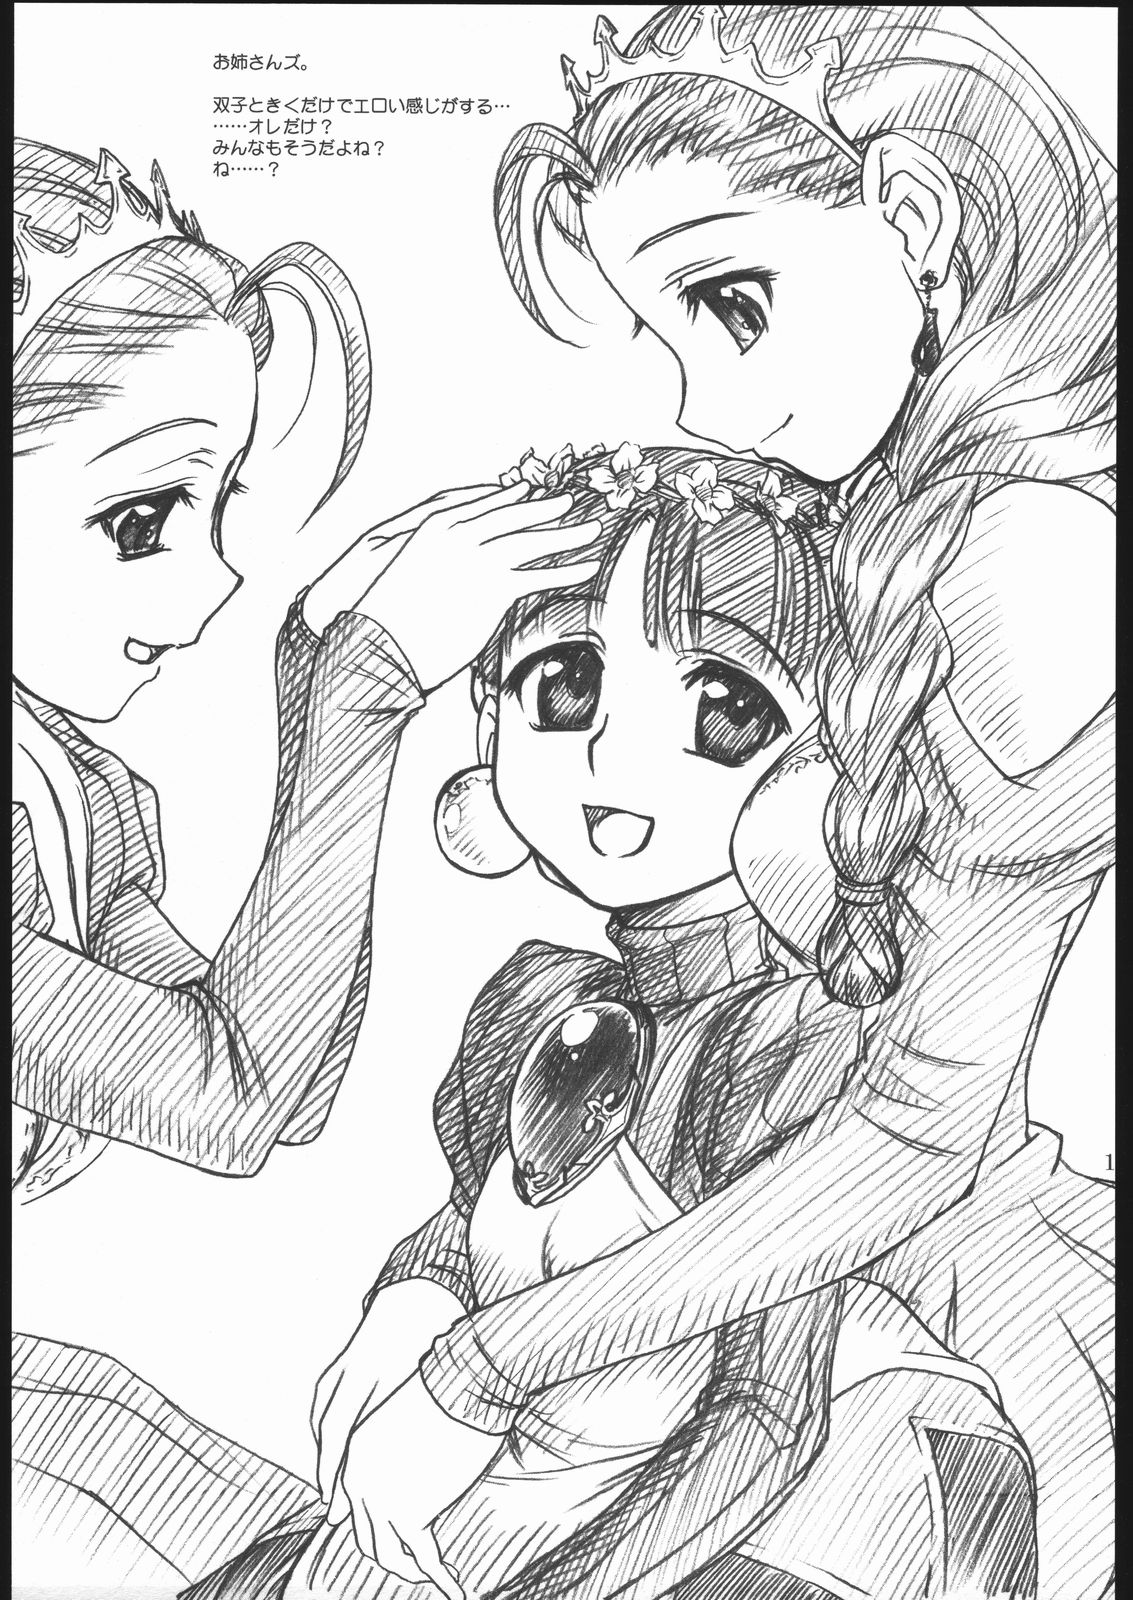 Anime Princess Drawing at GetDrawings.com | Free for personal use ...